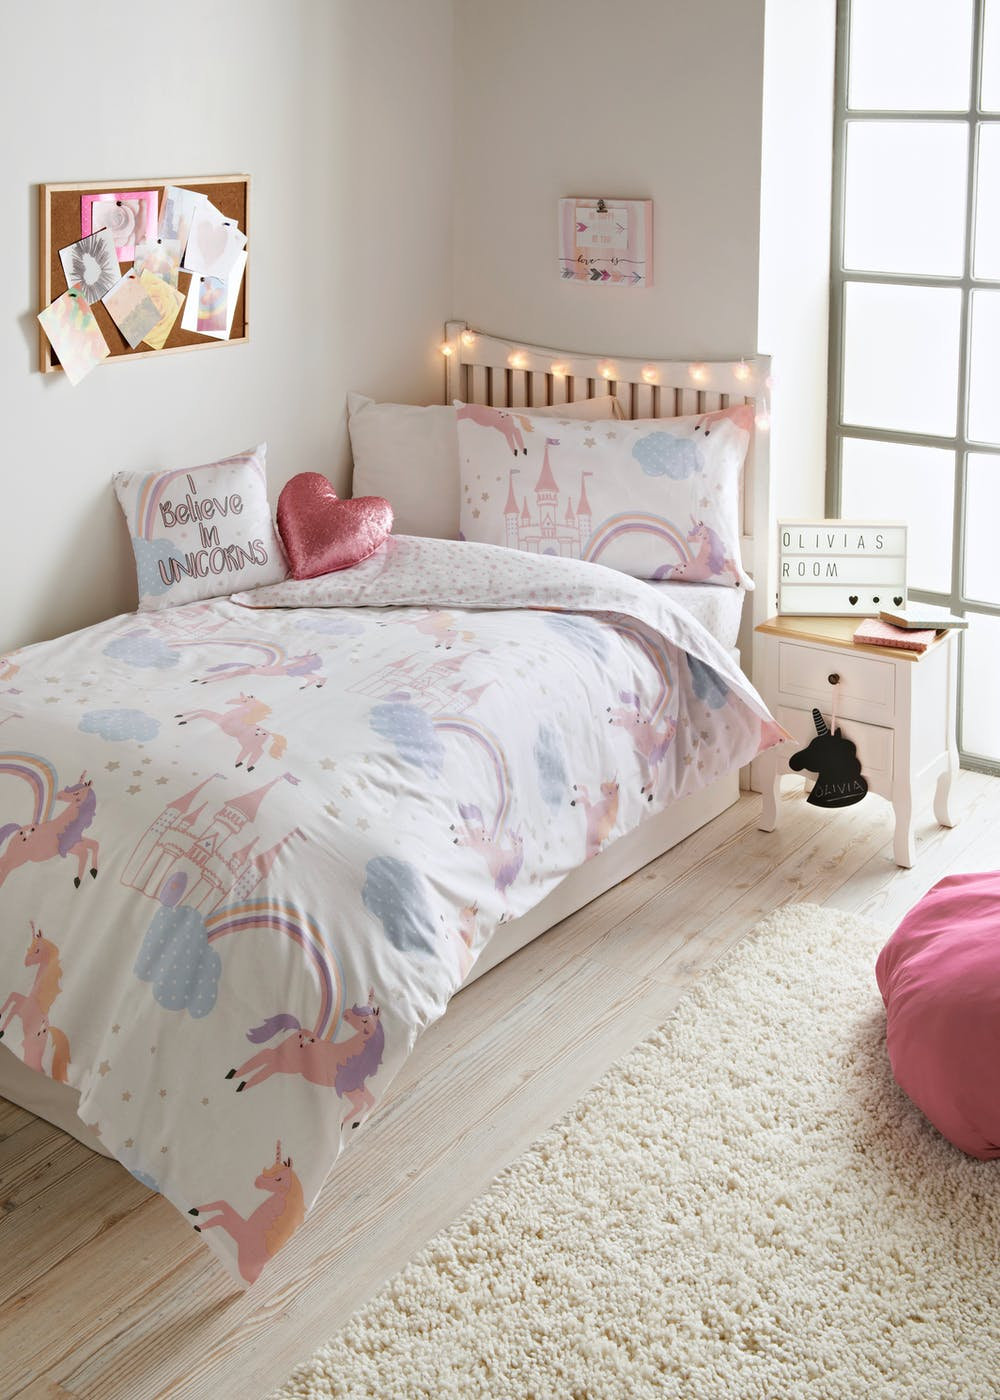 toddler 100 cotton unicorn duvet cover small bed pink matalan - Unicorn Bedding